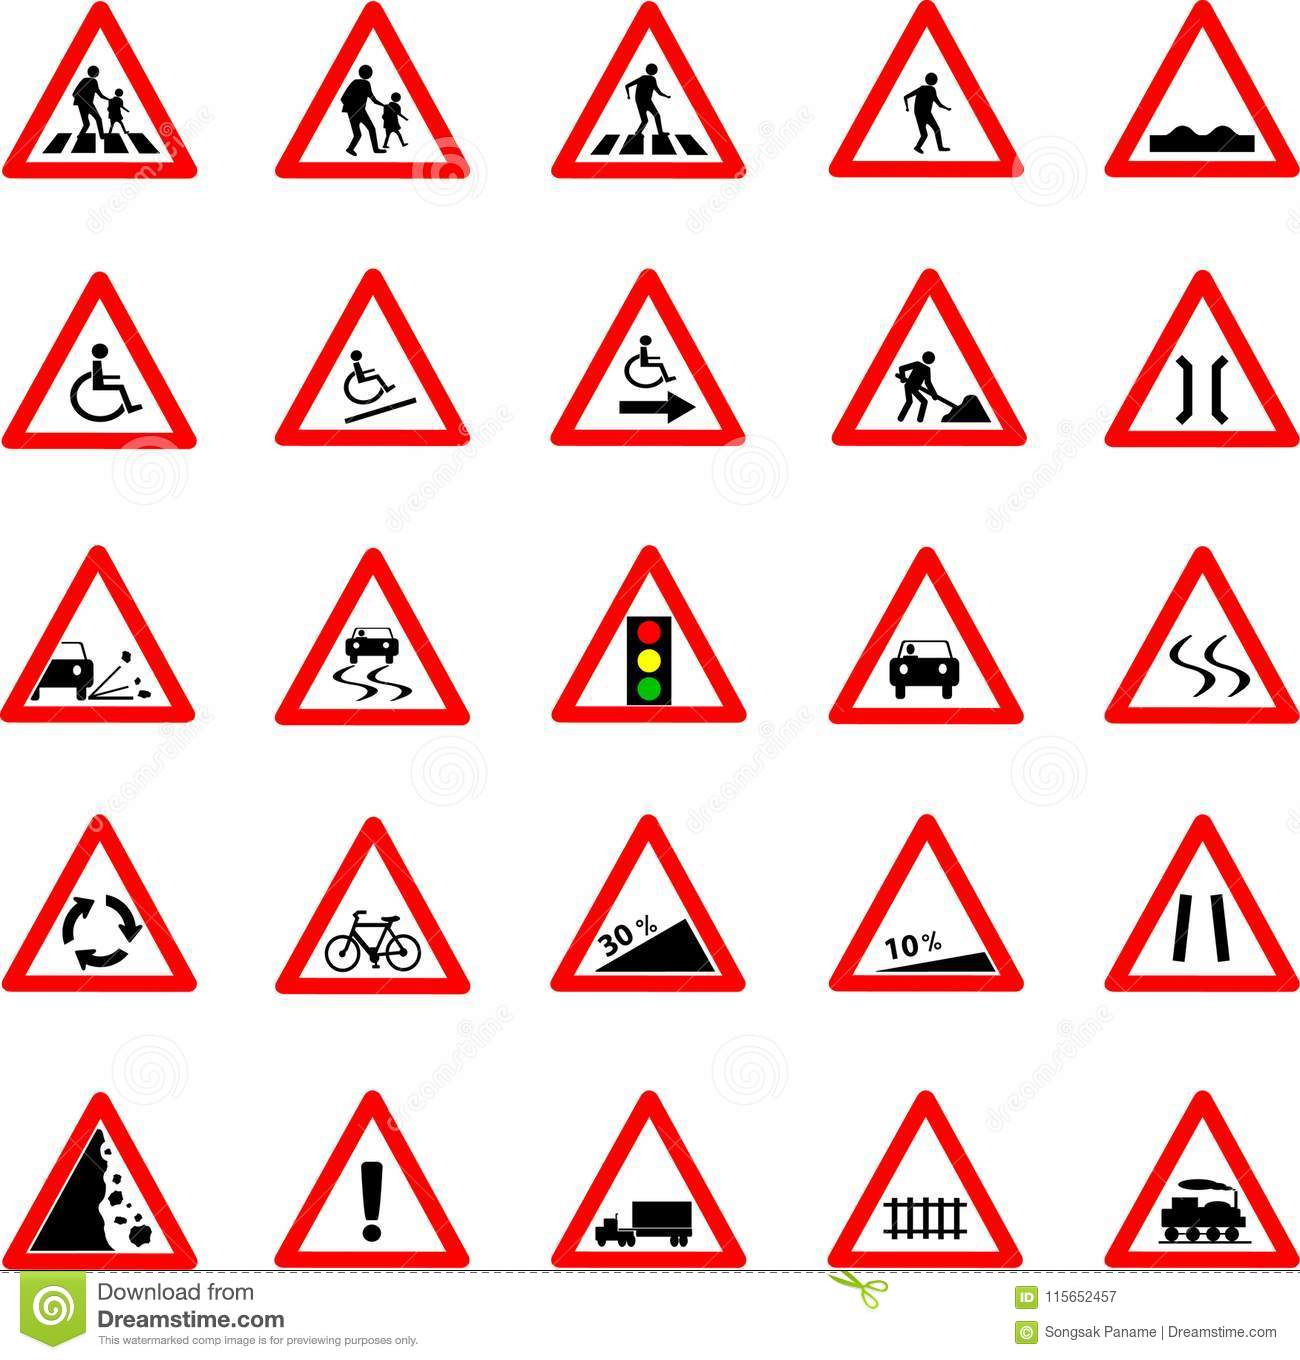 Triangle Road Signs >> Triangle Traffic And Road Sign Set Stock Vector Illustration Of